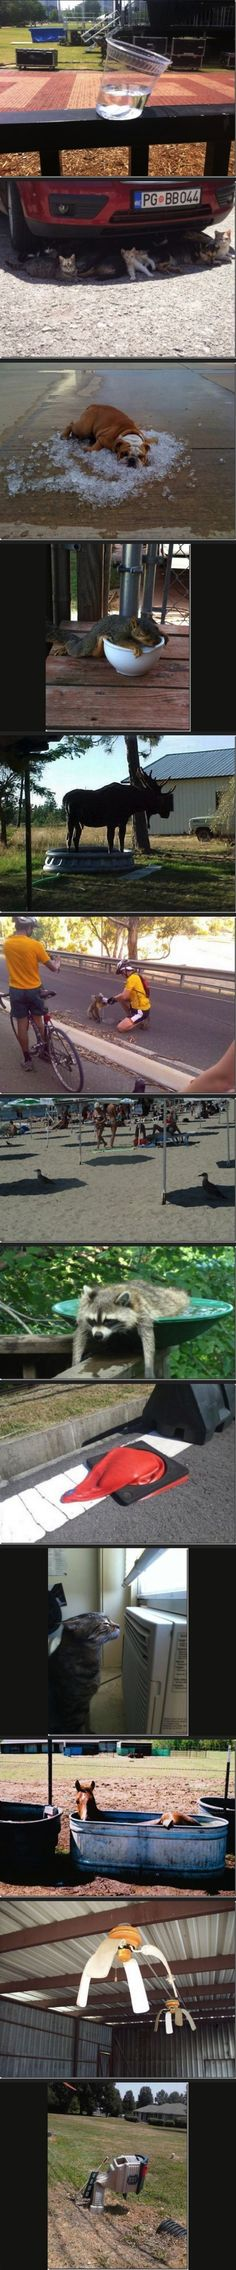 You Know It's Hot When ... (Compilation) | Click the link to view full image and description : )